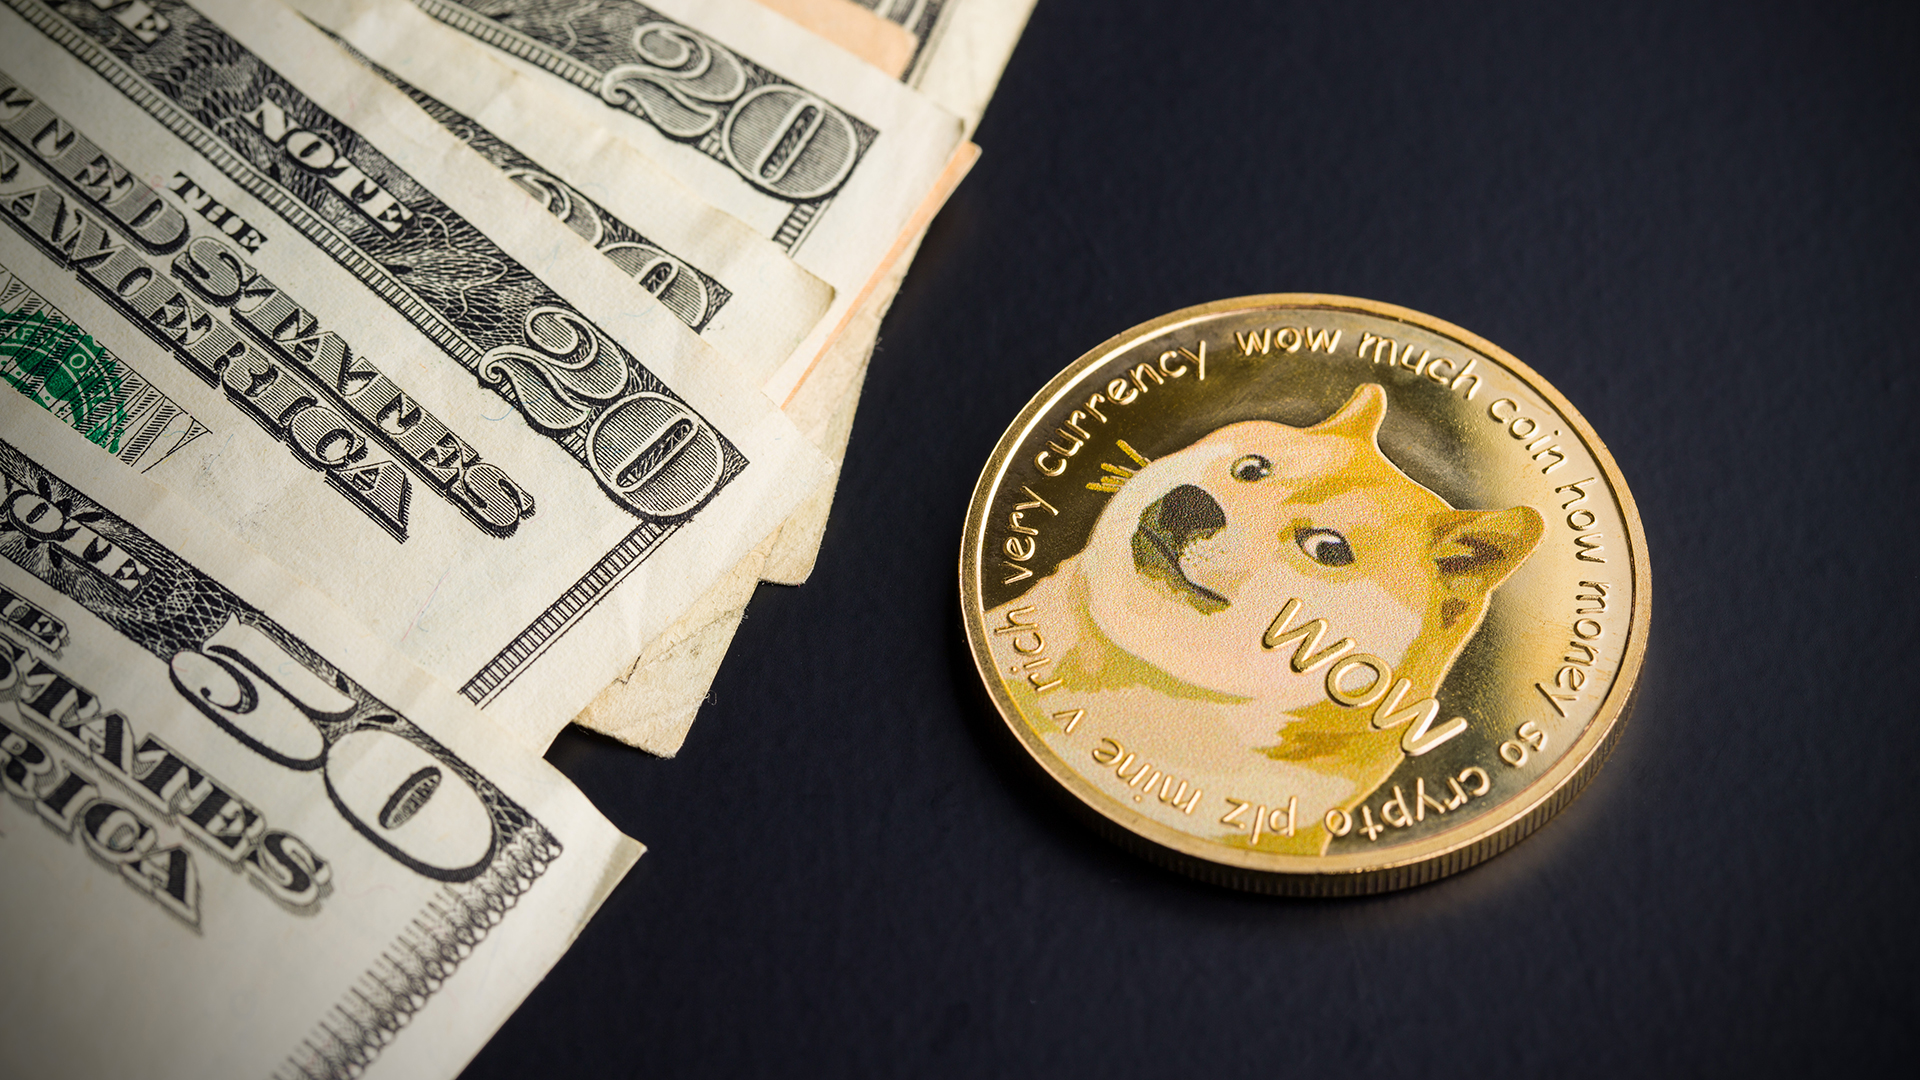 Top cryptocurrency listed — Dogecoin